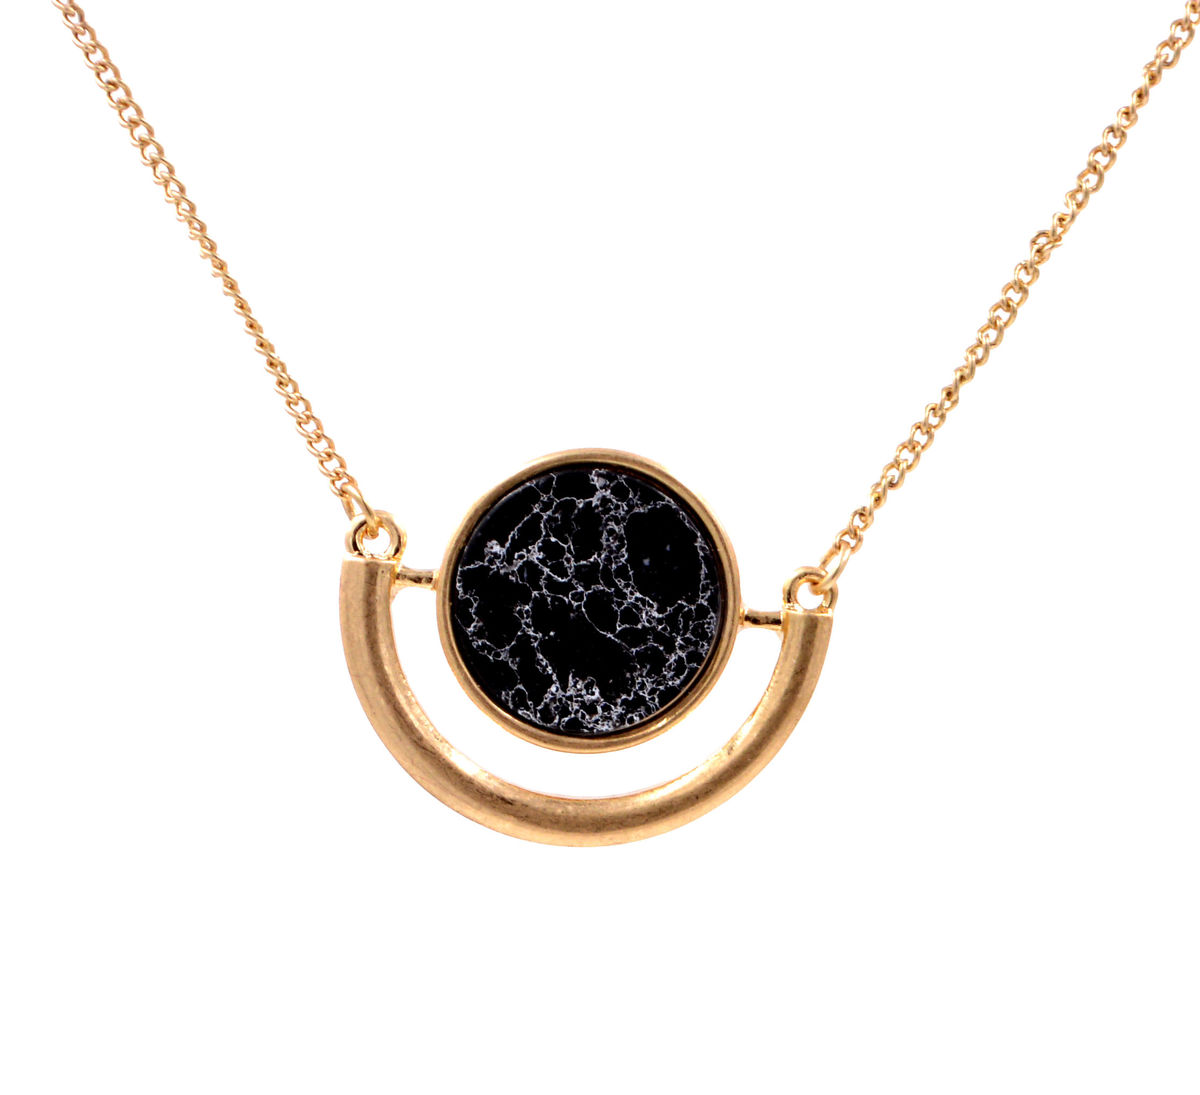 Marble Stone Jewelry : Black moon marble effect stone necklace in gold